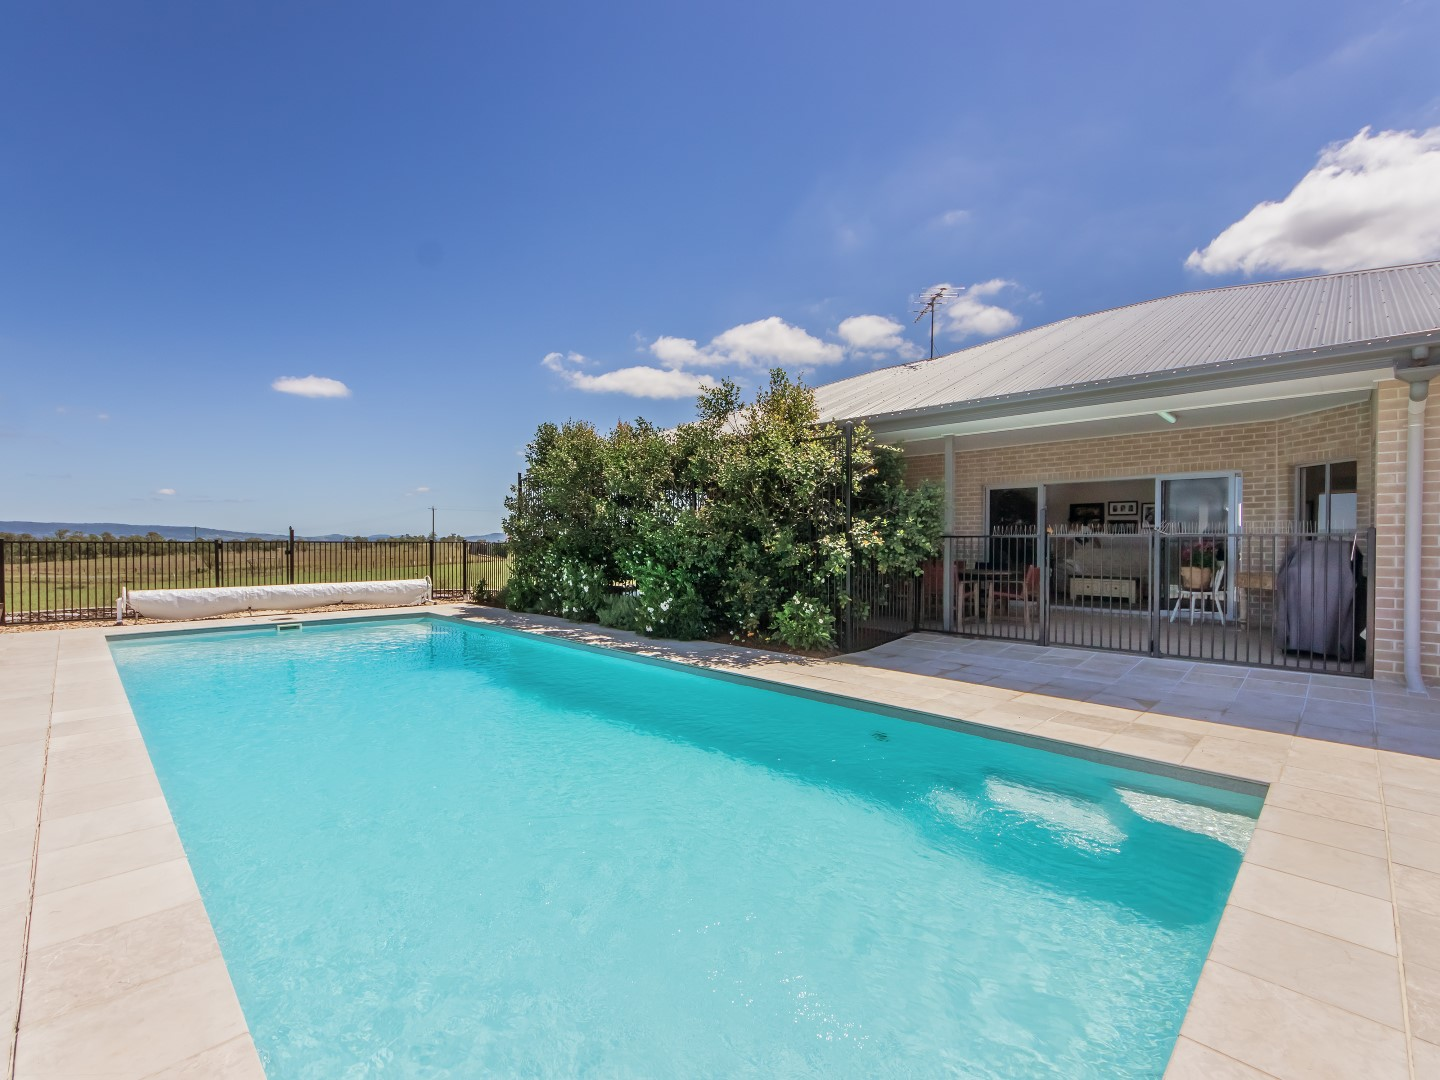 PRICE REDUCTION + MOTIVATED OWNERS = YOUR ESCAPE TO THE COUNTRY!